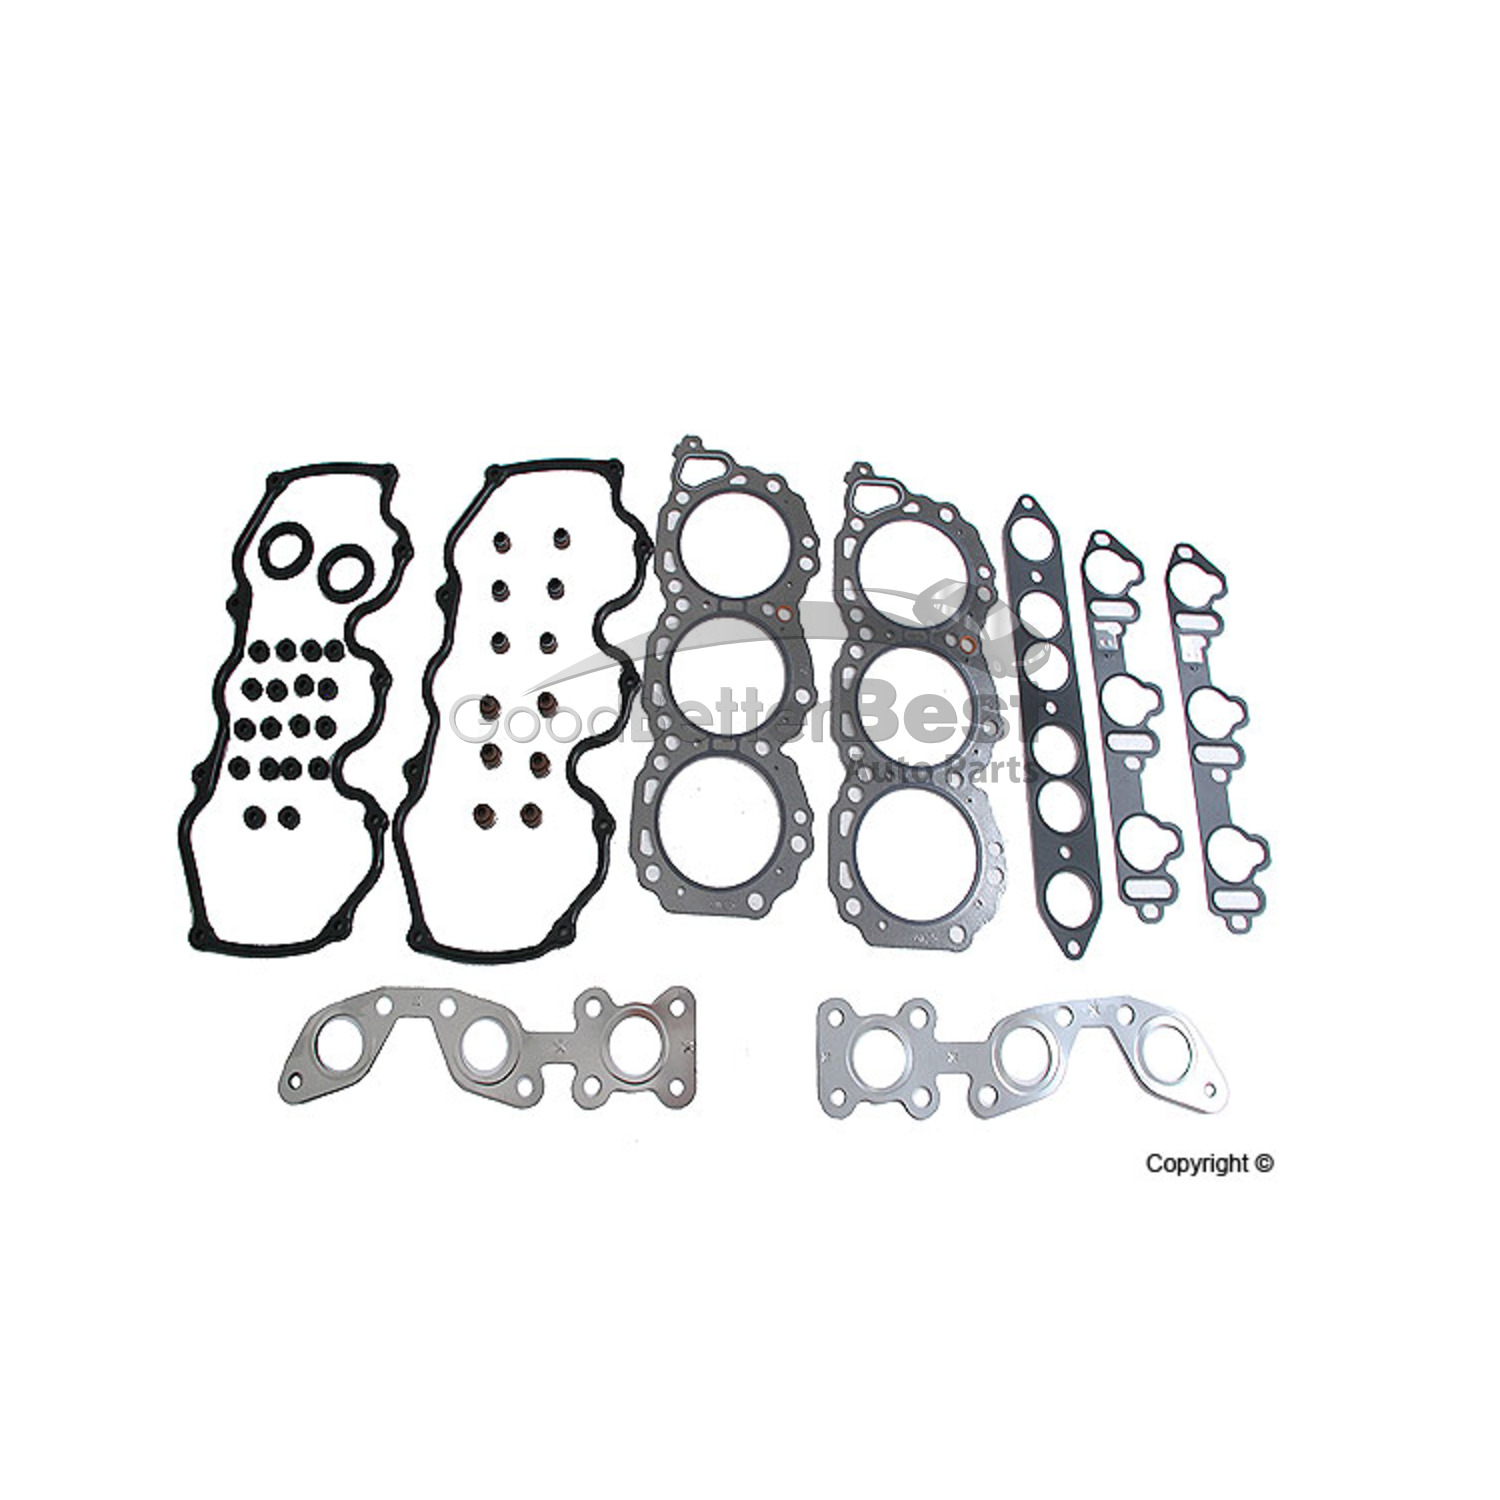 New Stone Engine Cylinder Head Gasket Set S126 For